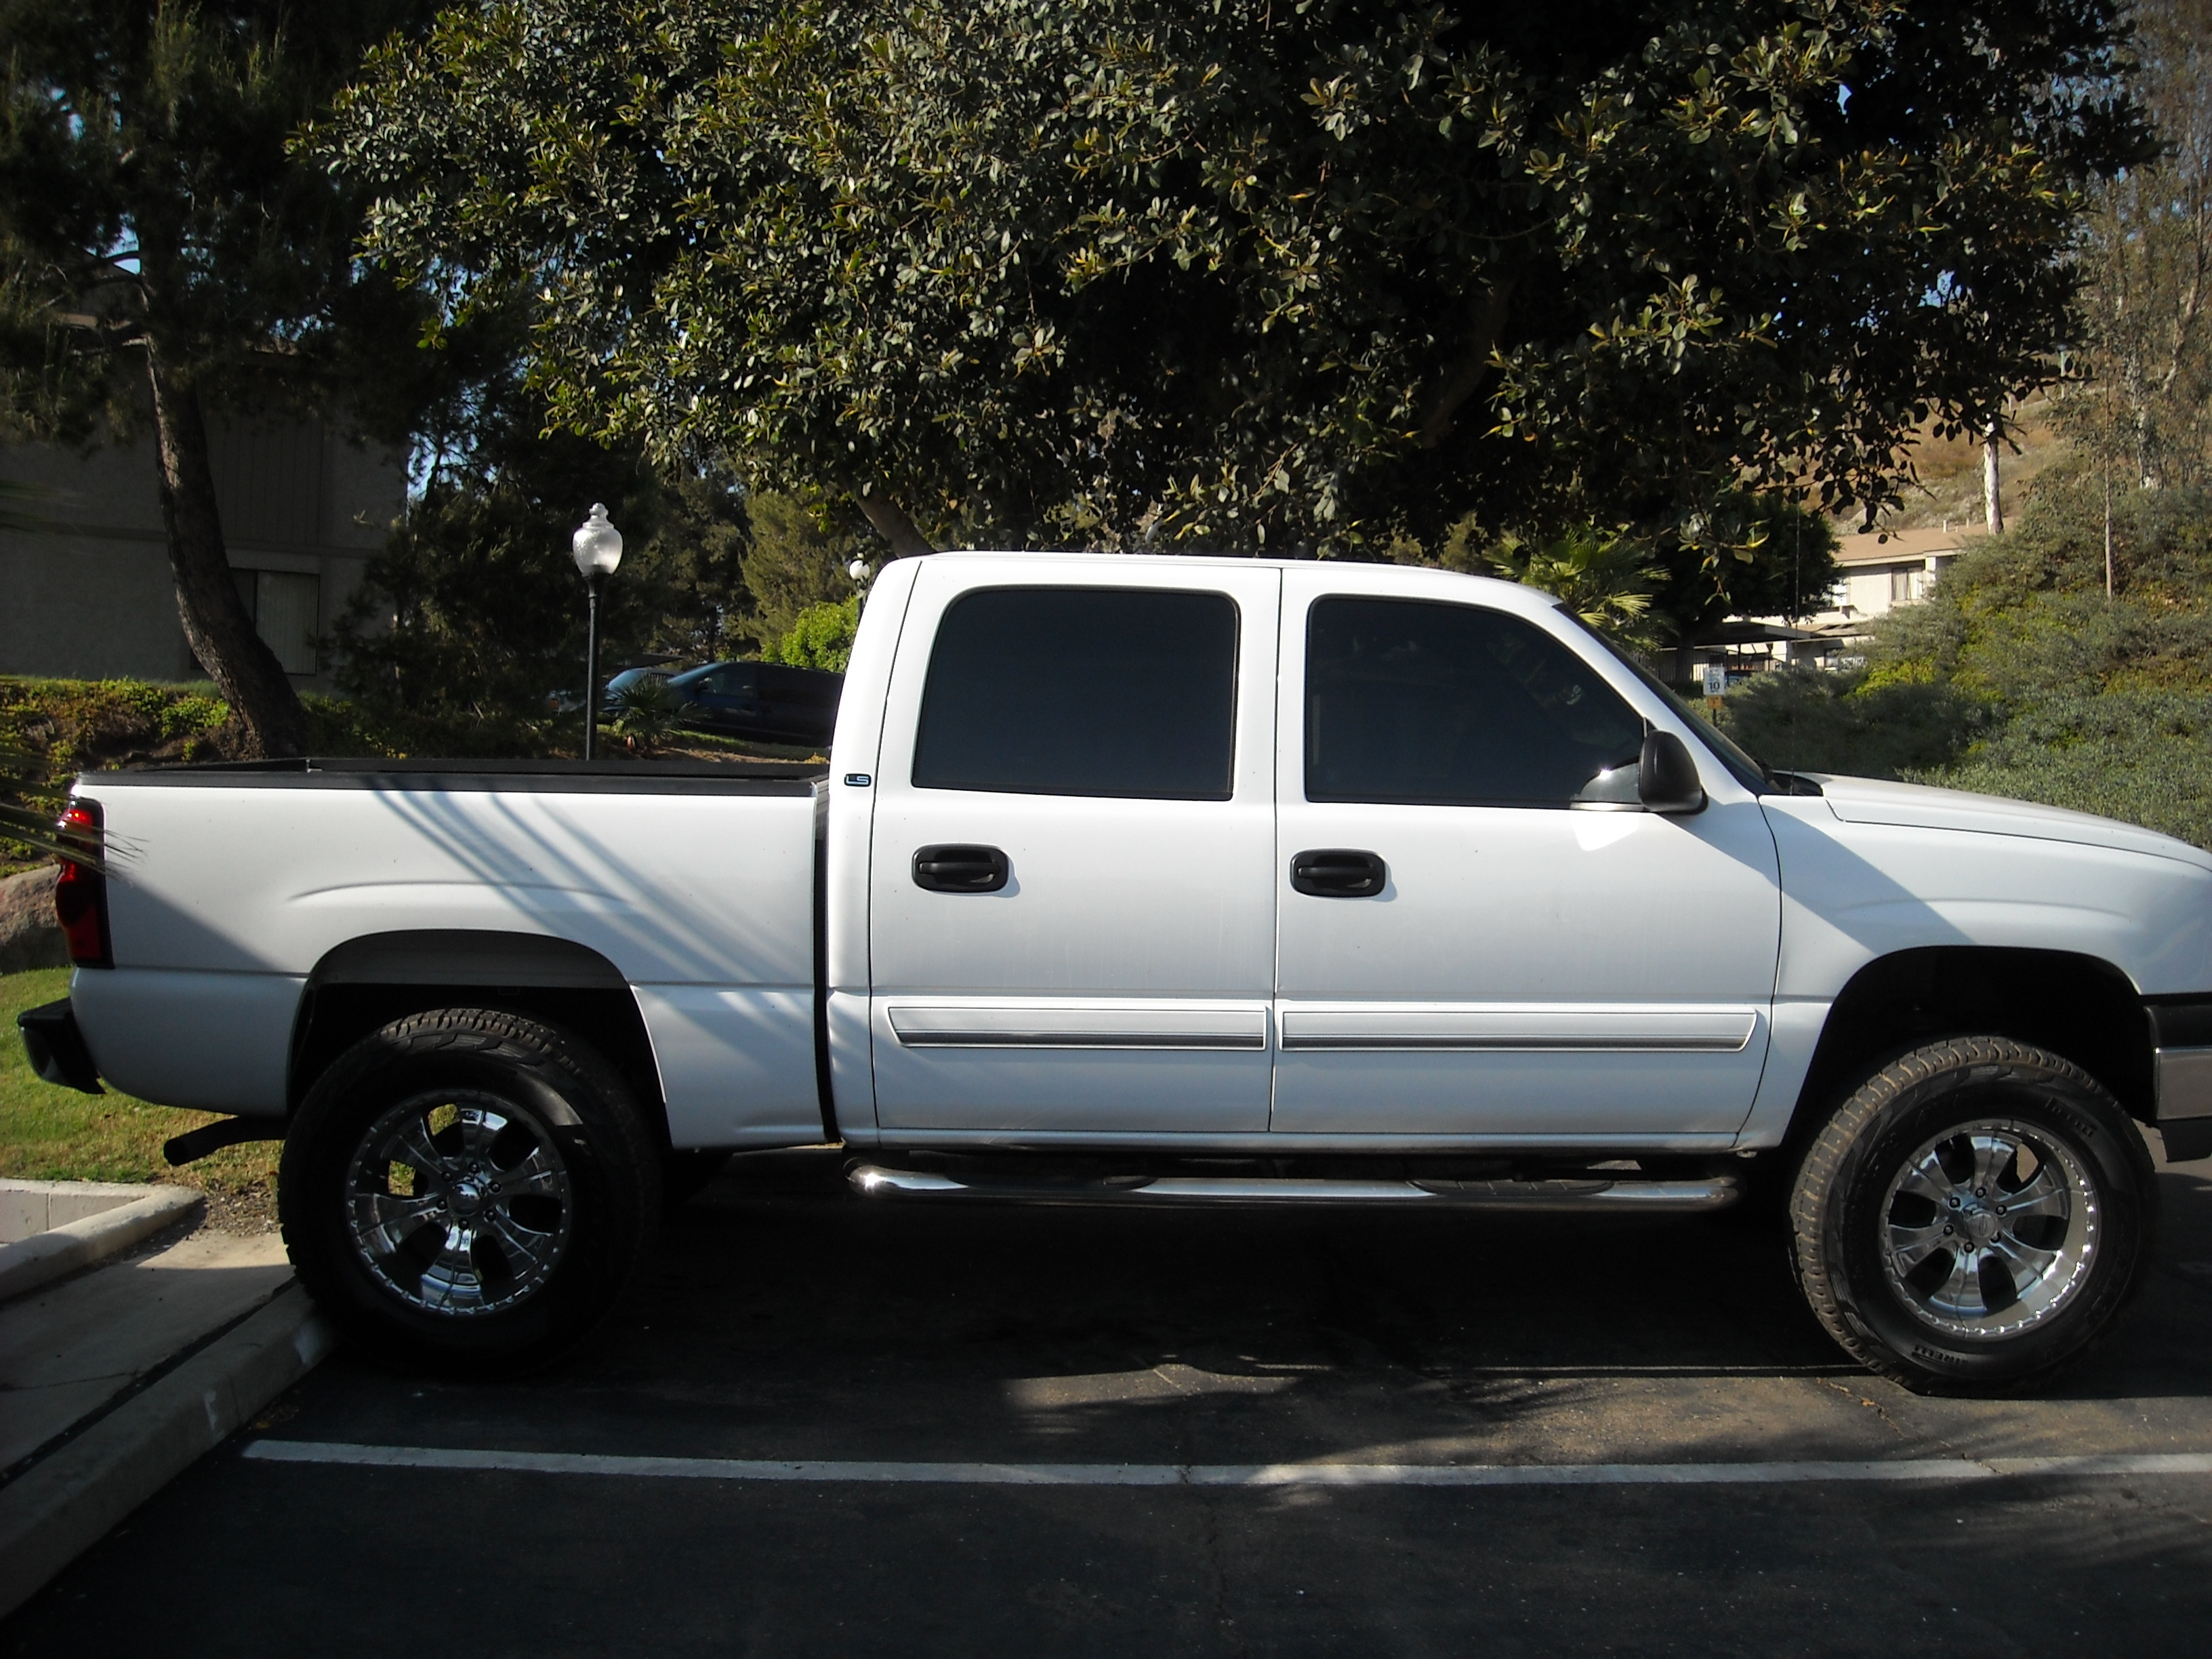 05 calisilverado 2005 chevrolet silverado 1500 regular cab specs photos modification info at. Black Bedroom Furniture Sets. Home Design Ideas